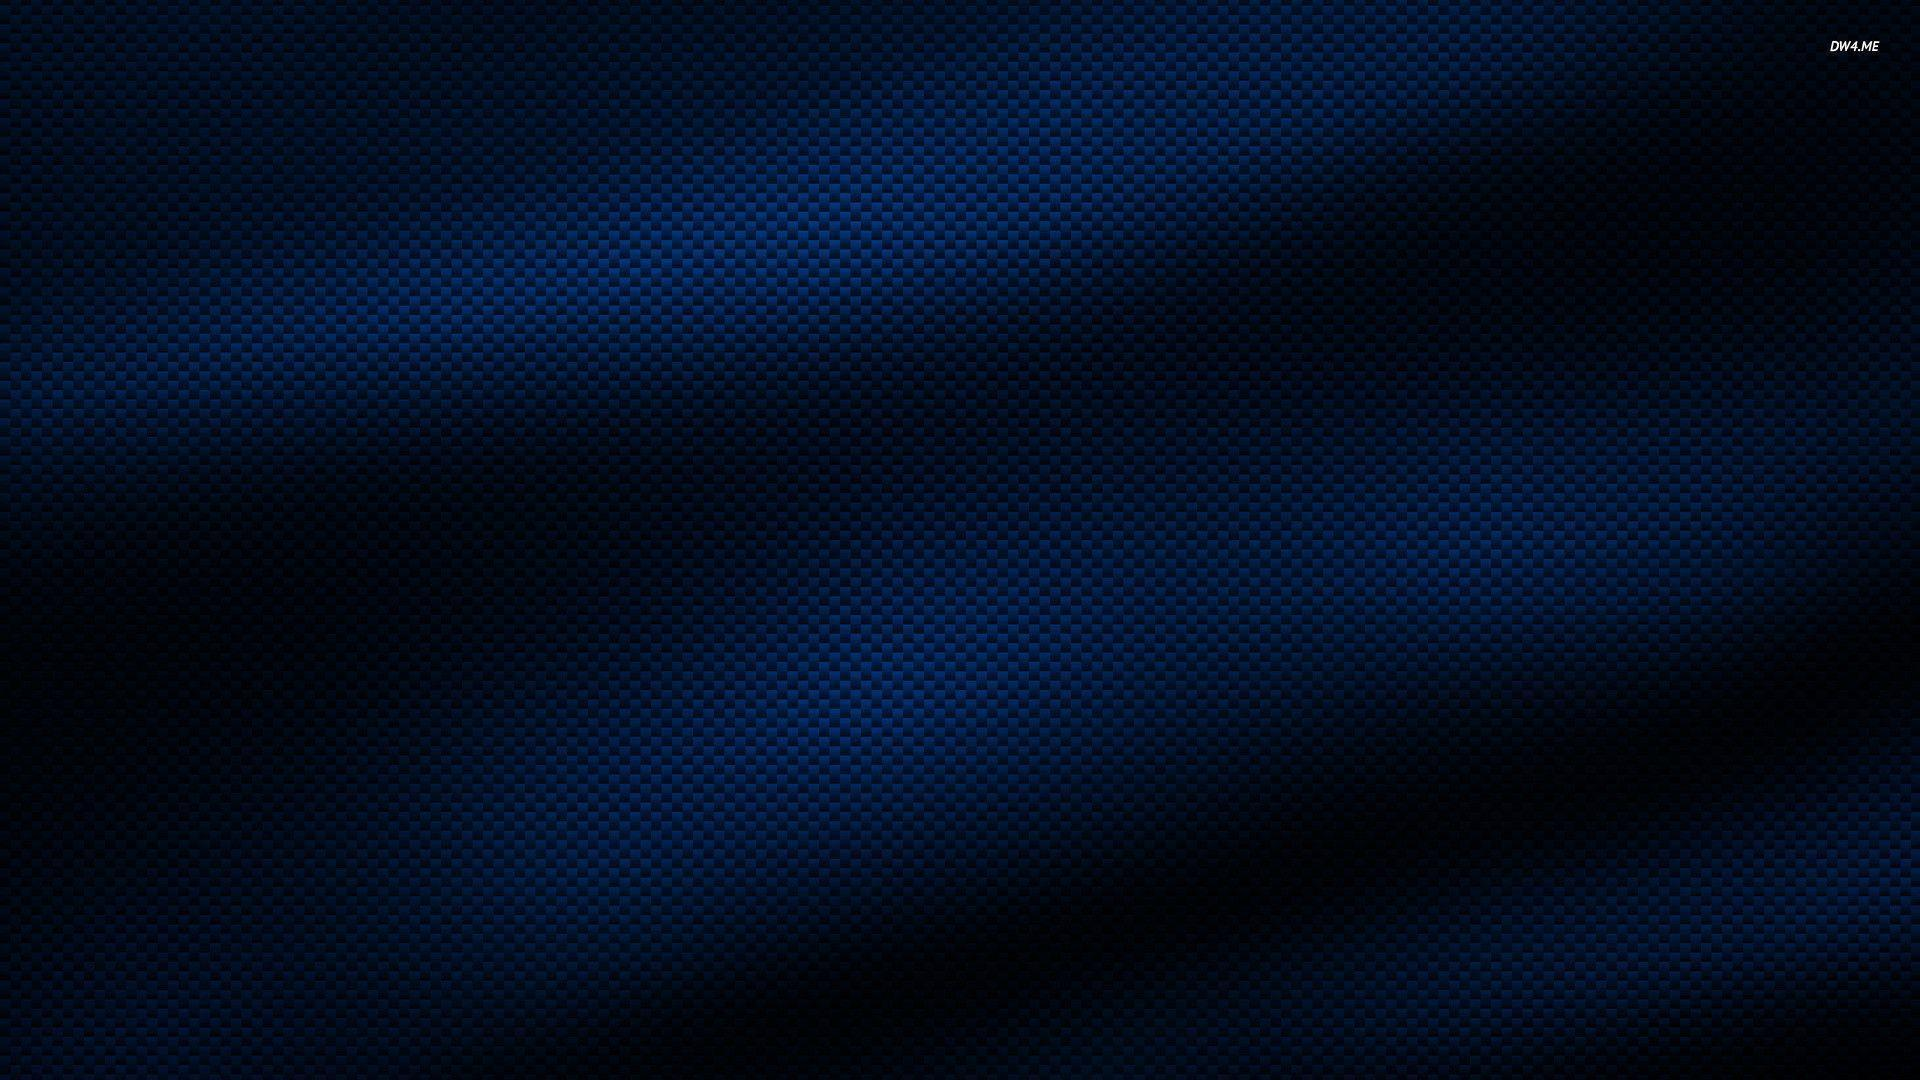 Carbon fiber fabric wallpapers